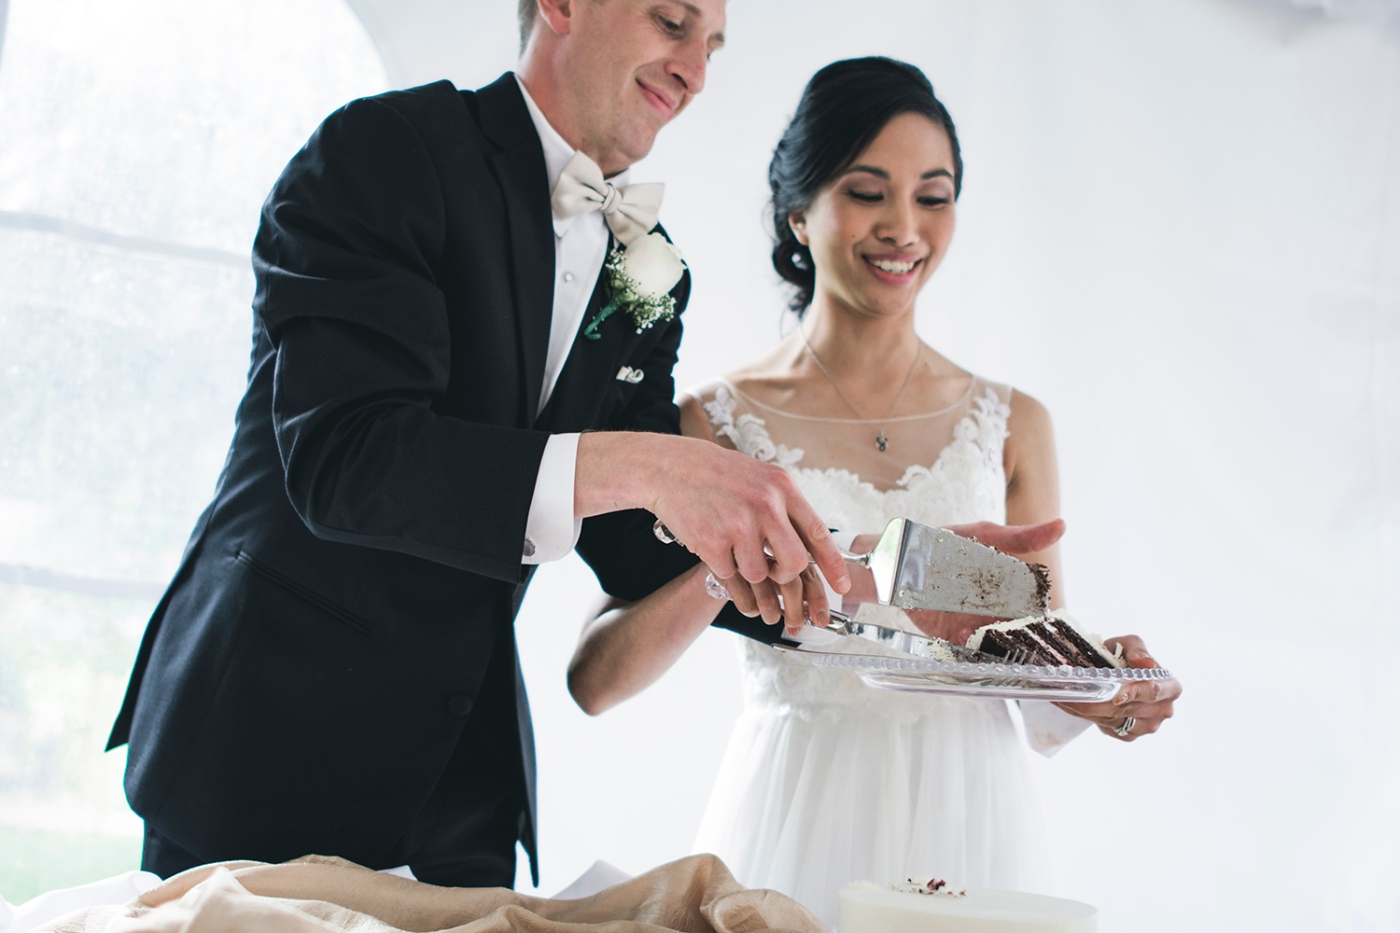 Jane_Speleers_2016_cake cutting _Wedding_Wild_Rose_Estates_Venue_JS7_8090